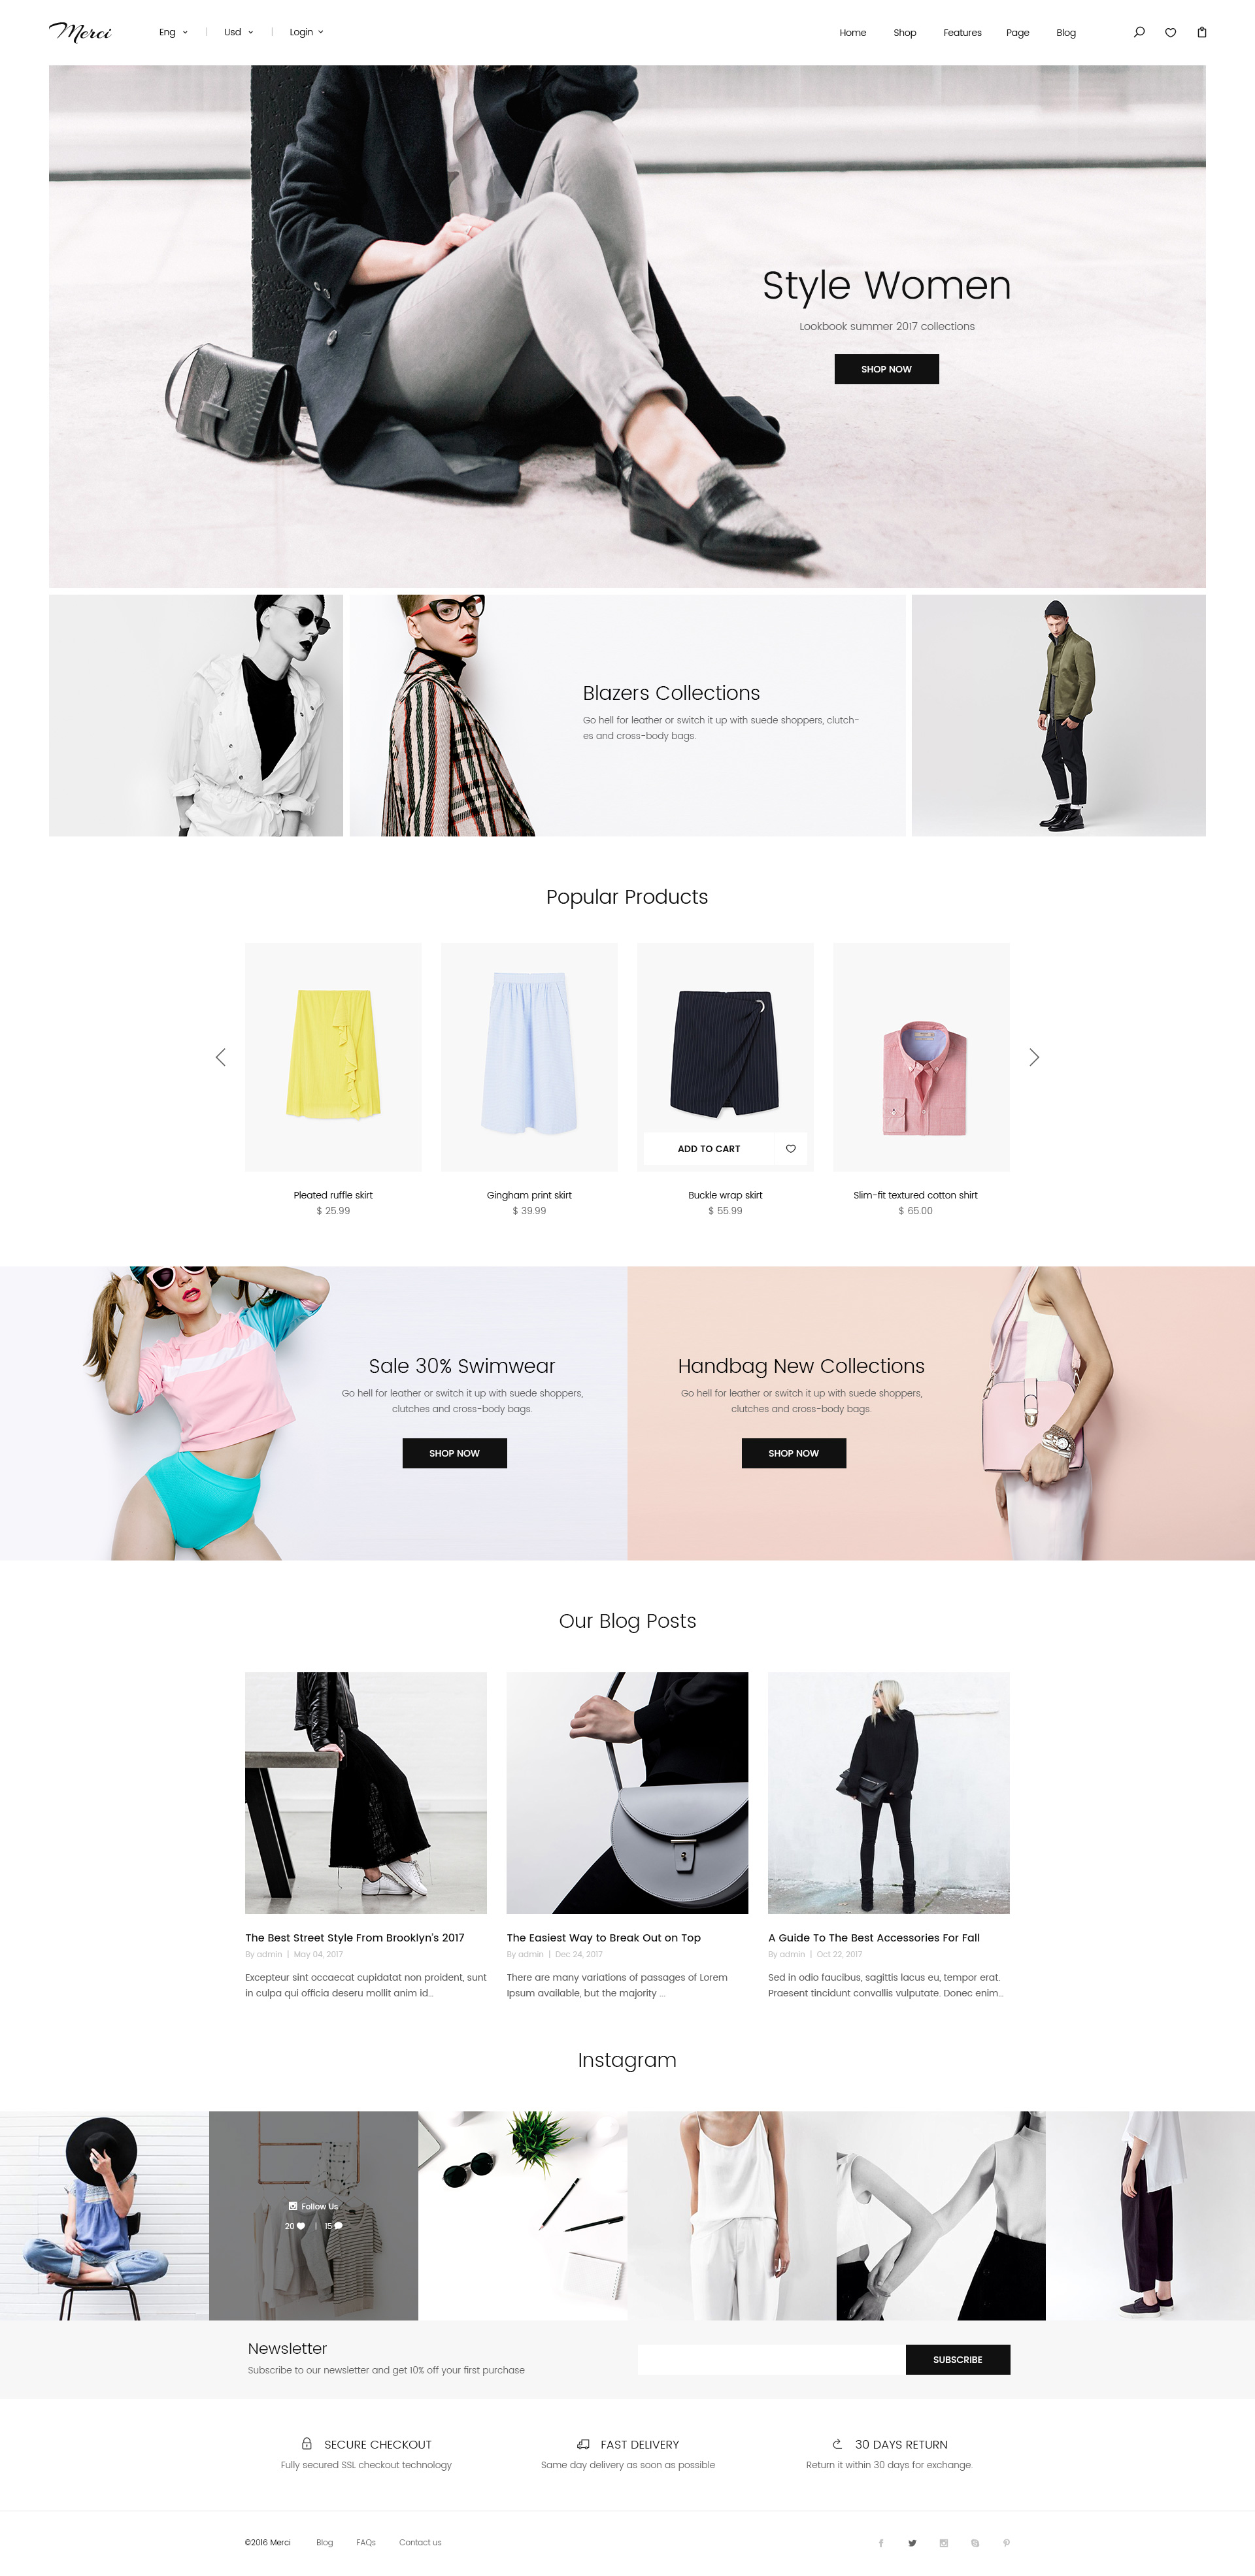 Merci minimalist ecommerce psd template shopping retail preview 01_home 01_00_preview jpg preview 01_home 01_01_home_classic jpg